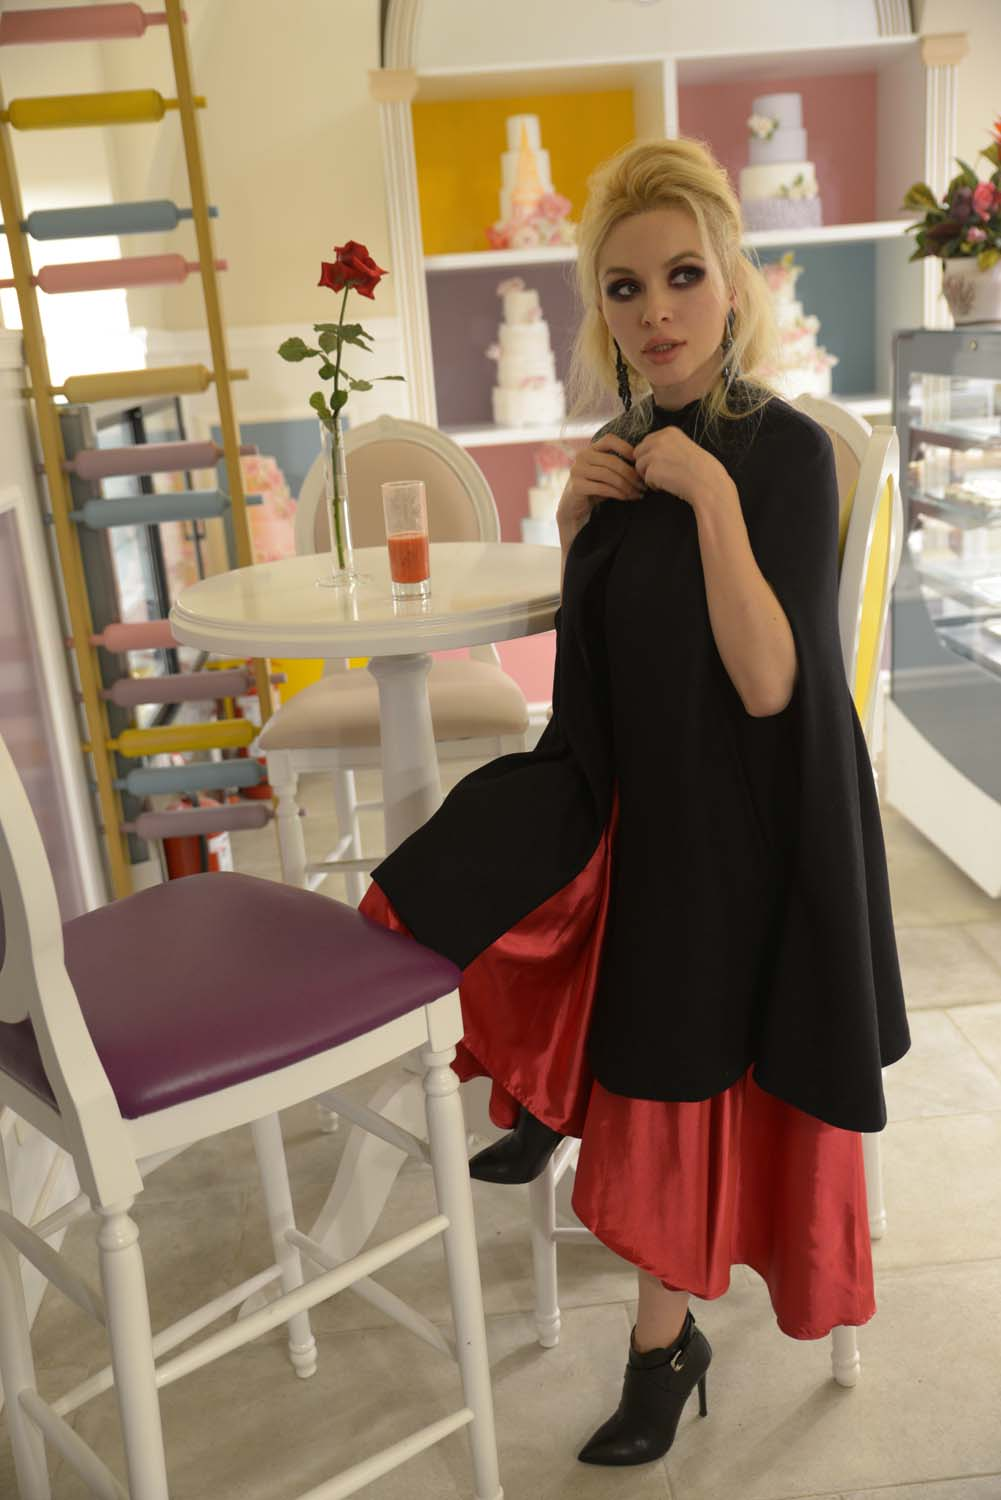 29_pastry_fucsia_skirt_black_cape